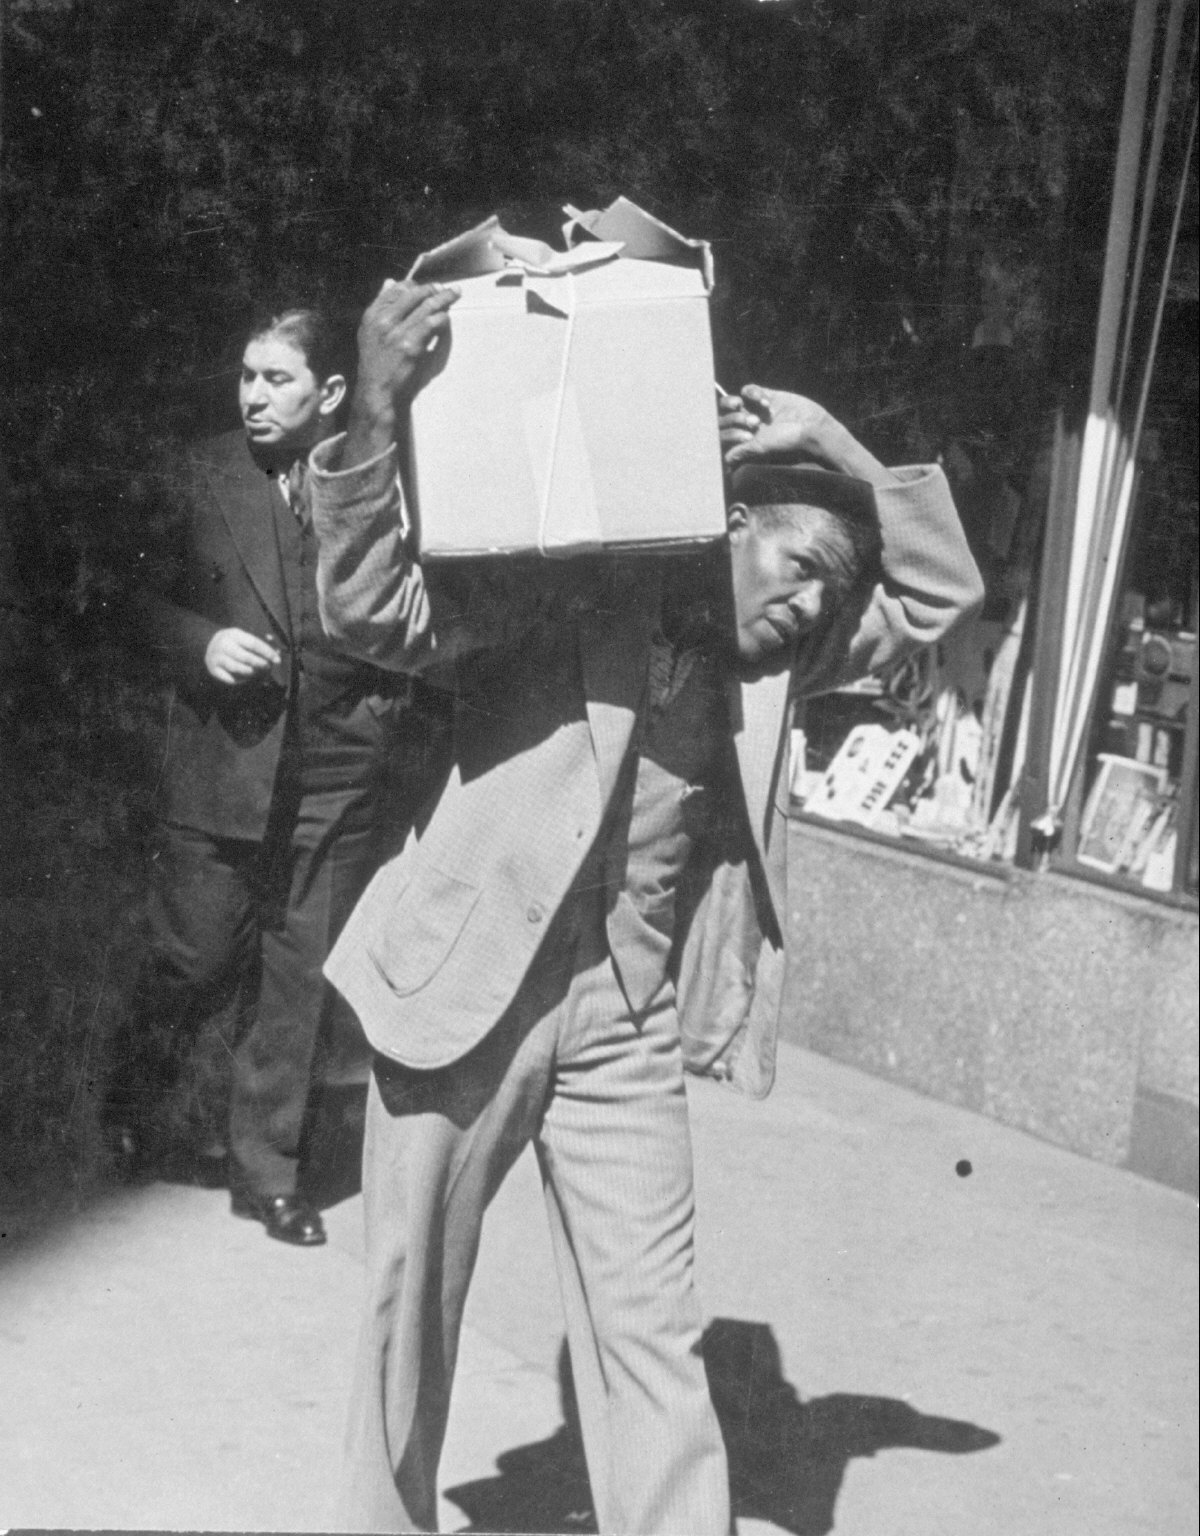 Man walking with package